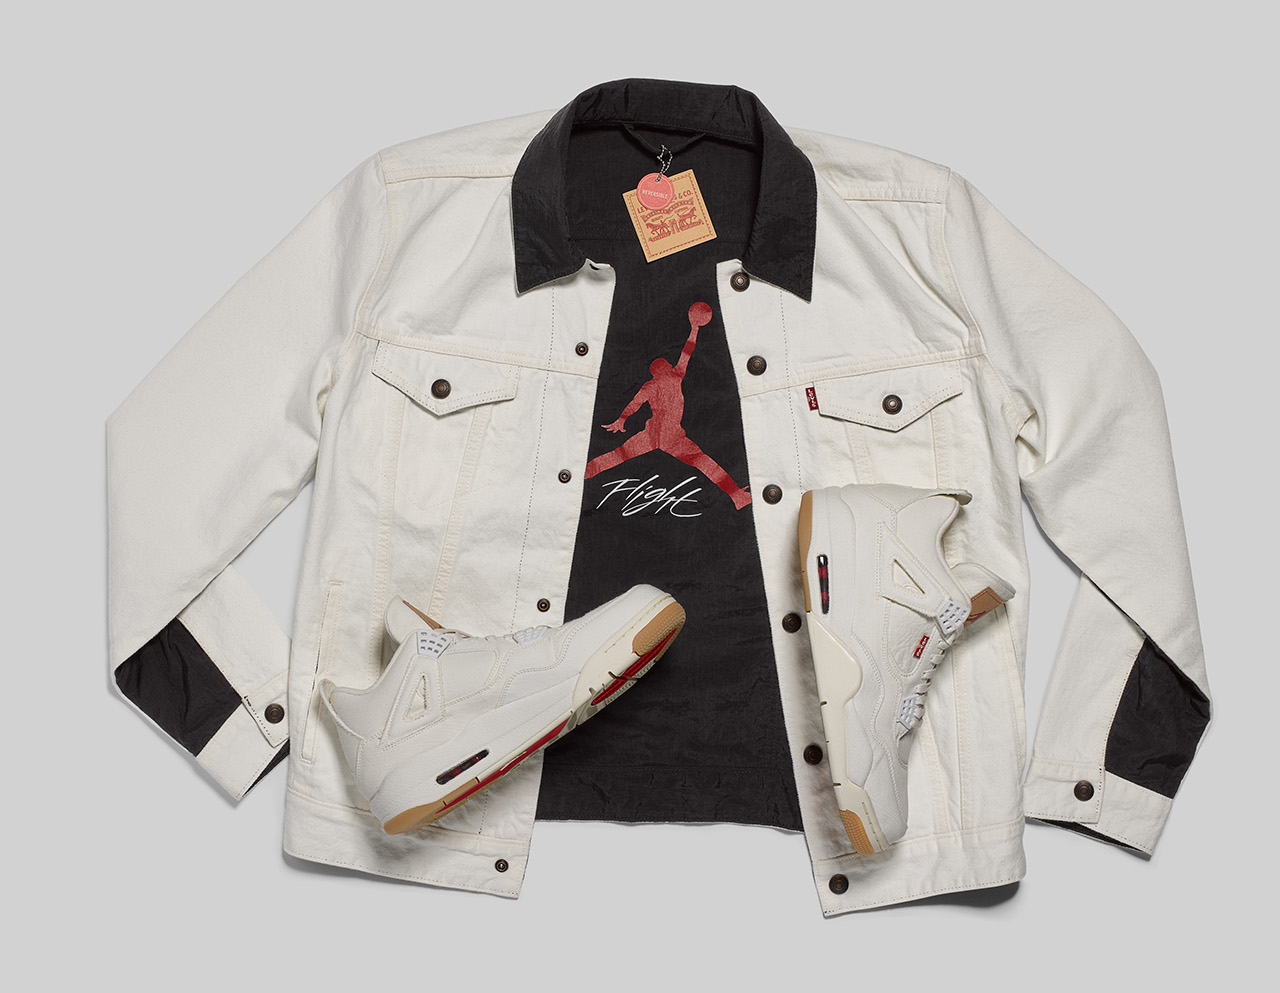 cbd848b4b77e79 The Levi s x Jordan Reversible Trucker Jacket is the perfect mash-up of an  original Levi s Trucker and Jordan Flight Suit. It is made with the highest  ...